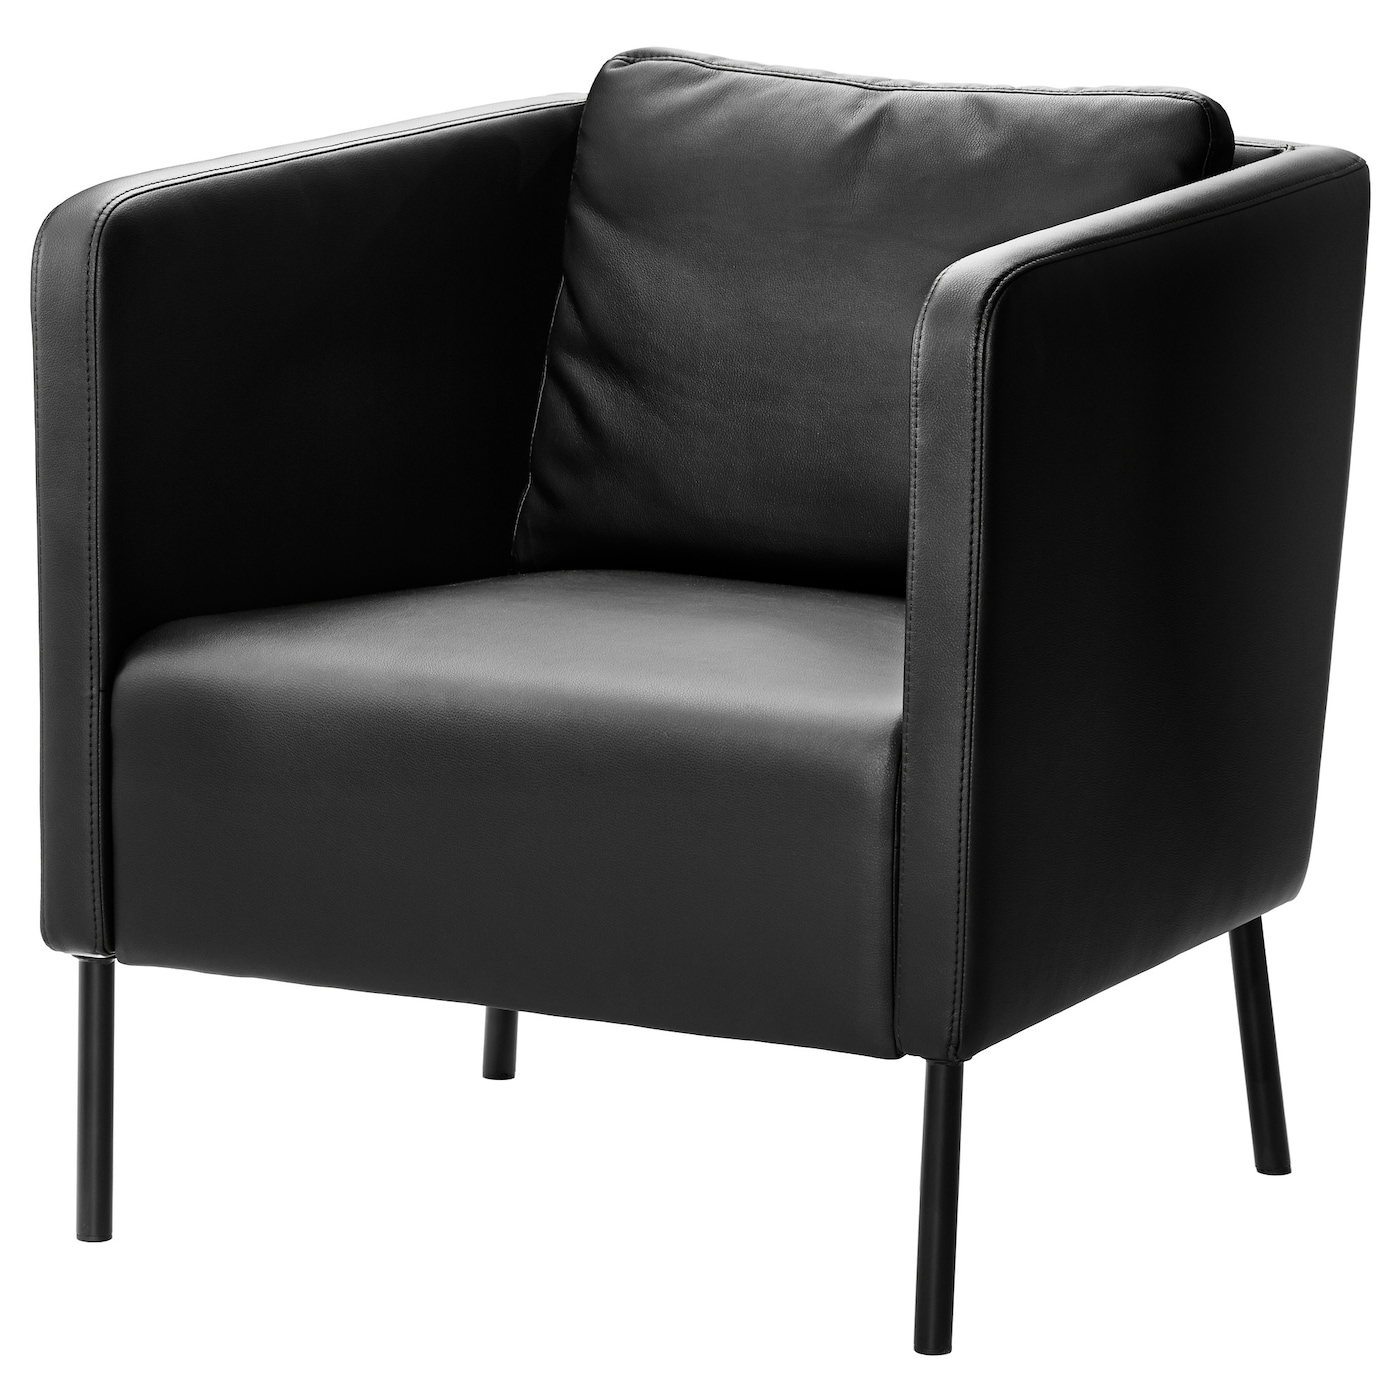 IKEA EKERÖ Armchair The Cover Is Easy To Keep Clean As It Can Be Wiped Clean